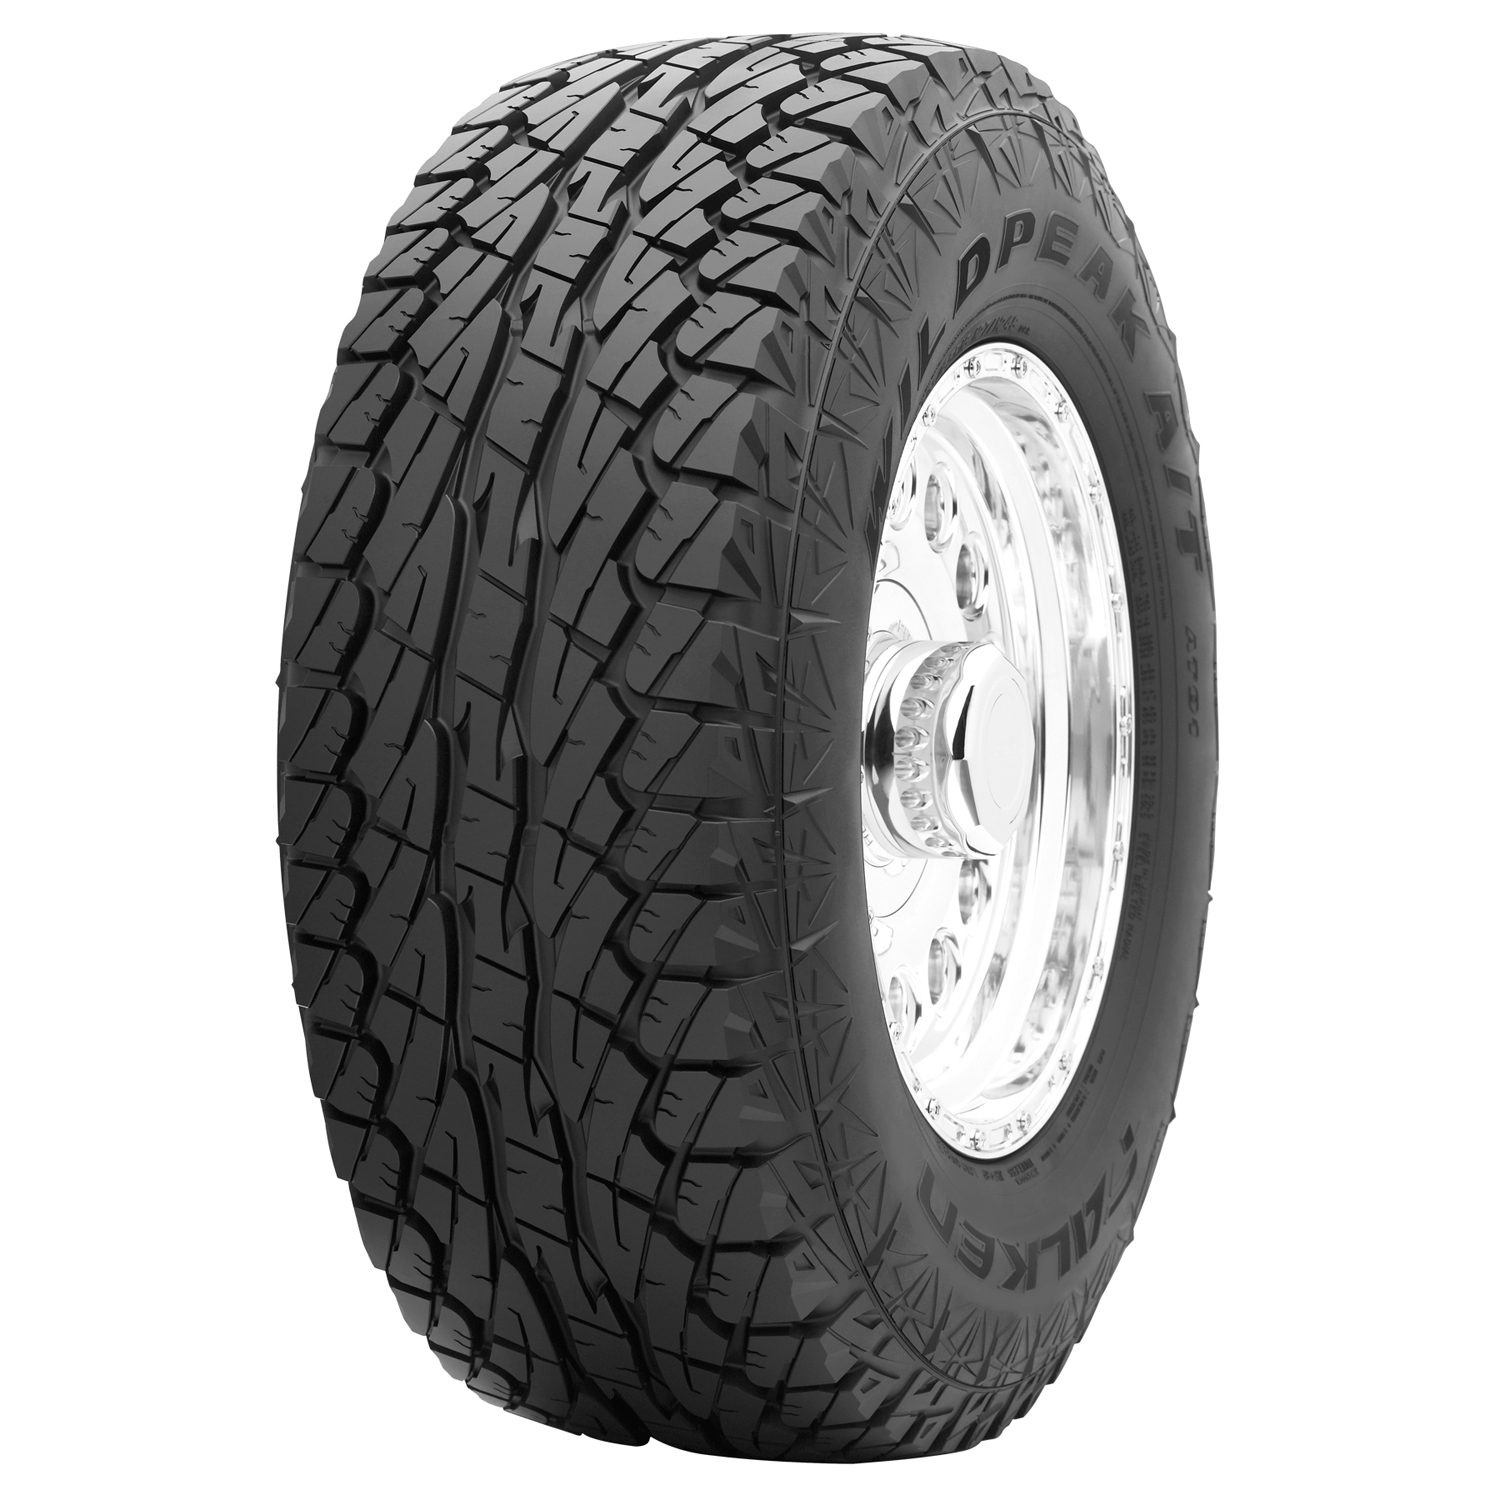 Falken  Wild Peak A/T - 275/60R20 115S BW - Off Road Tire